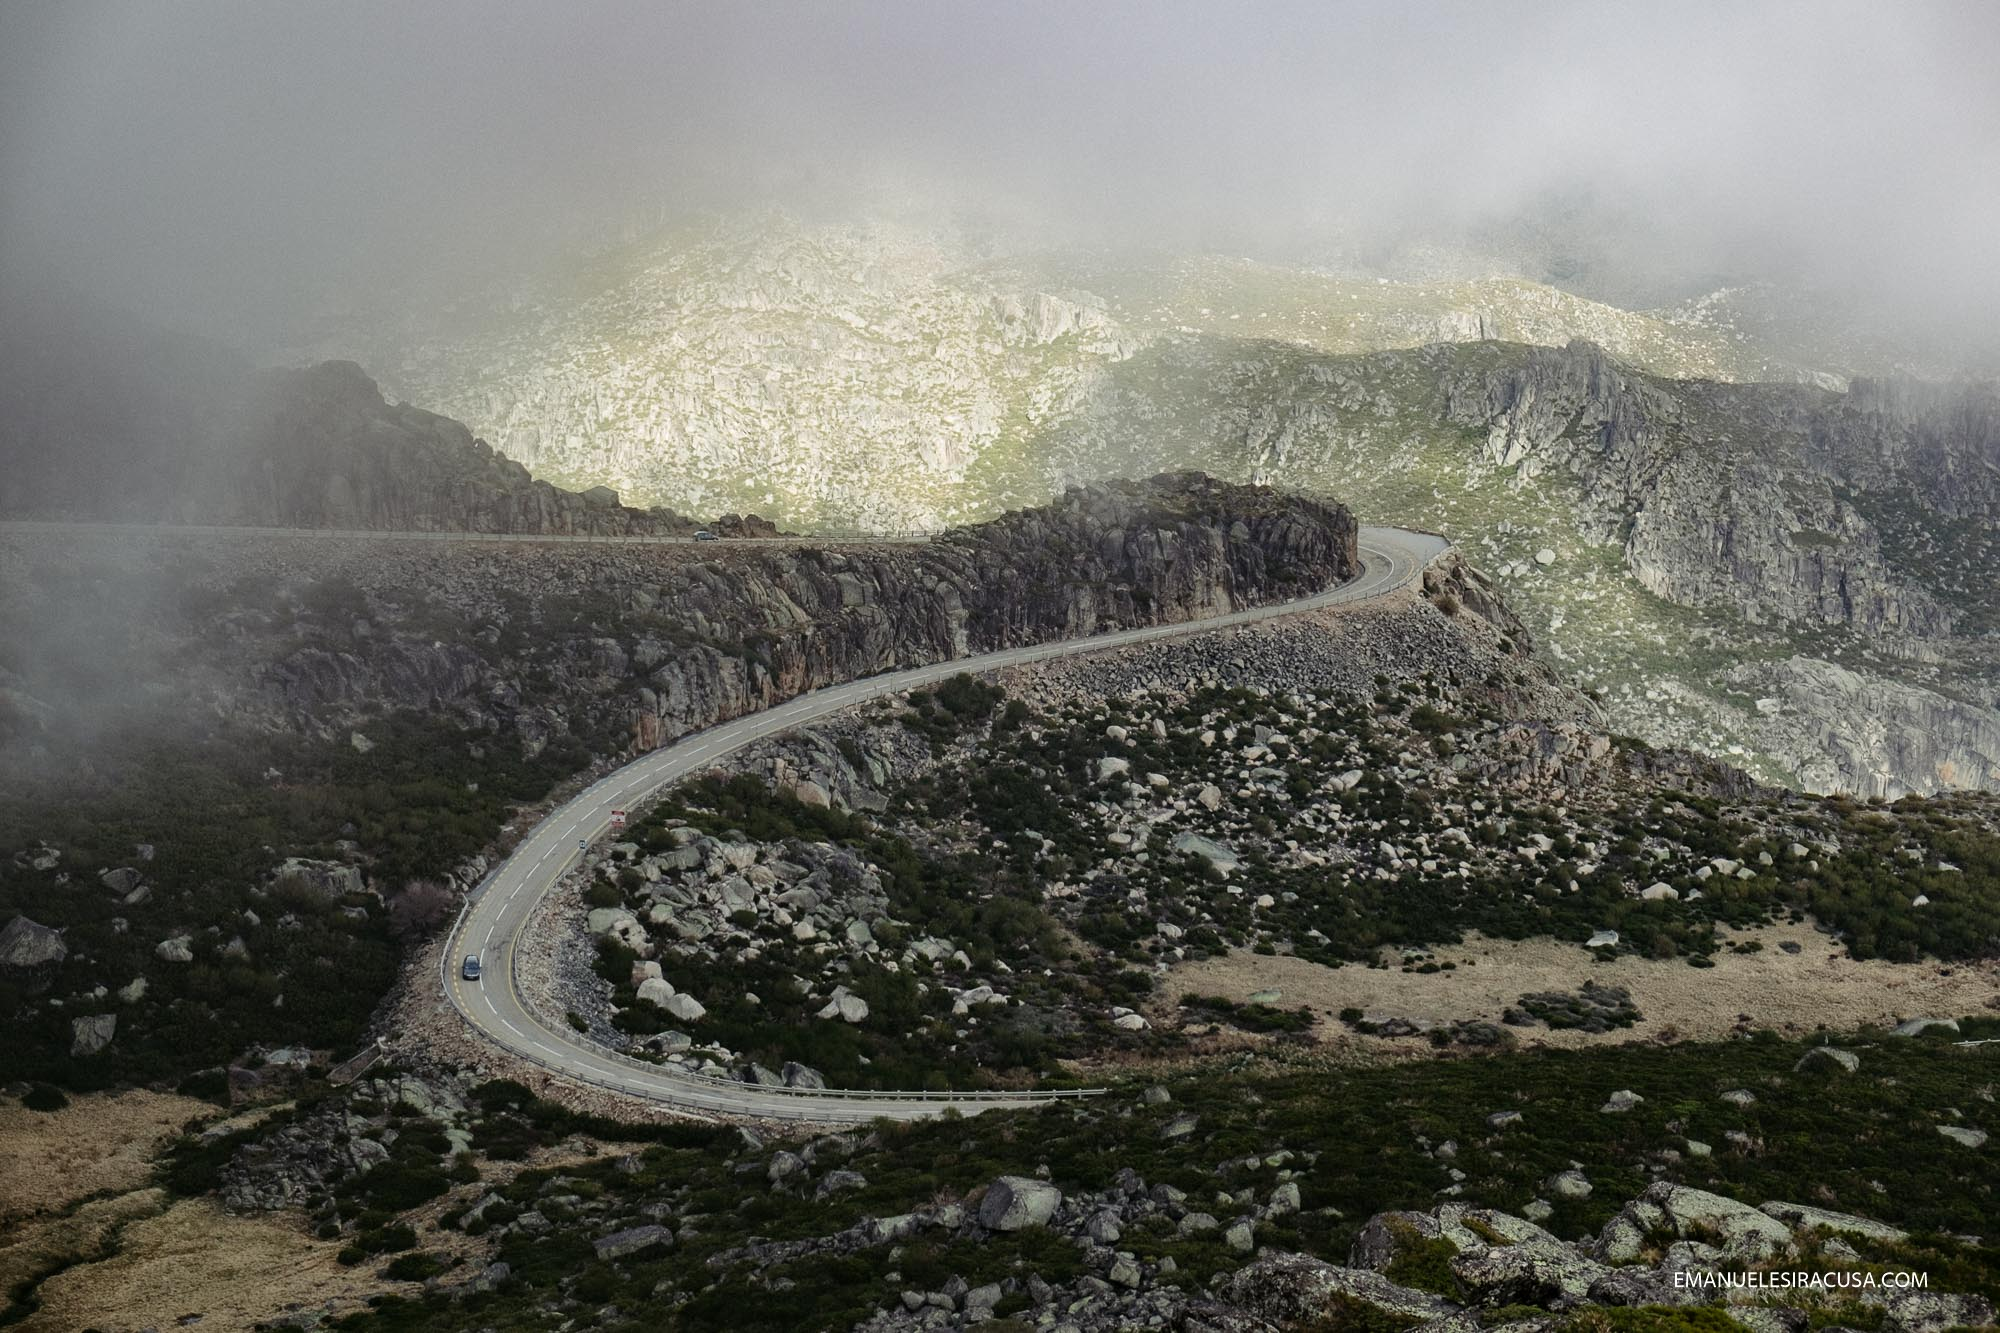 A Mountain road on the way up to Torre, the top of Serra da Estrela, in beautiful atmospheric light.